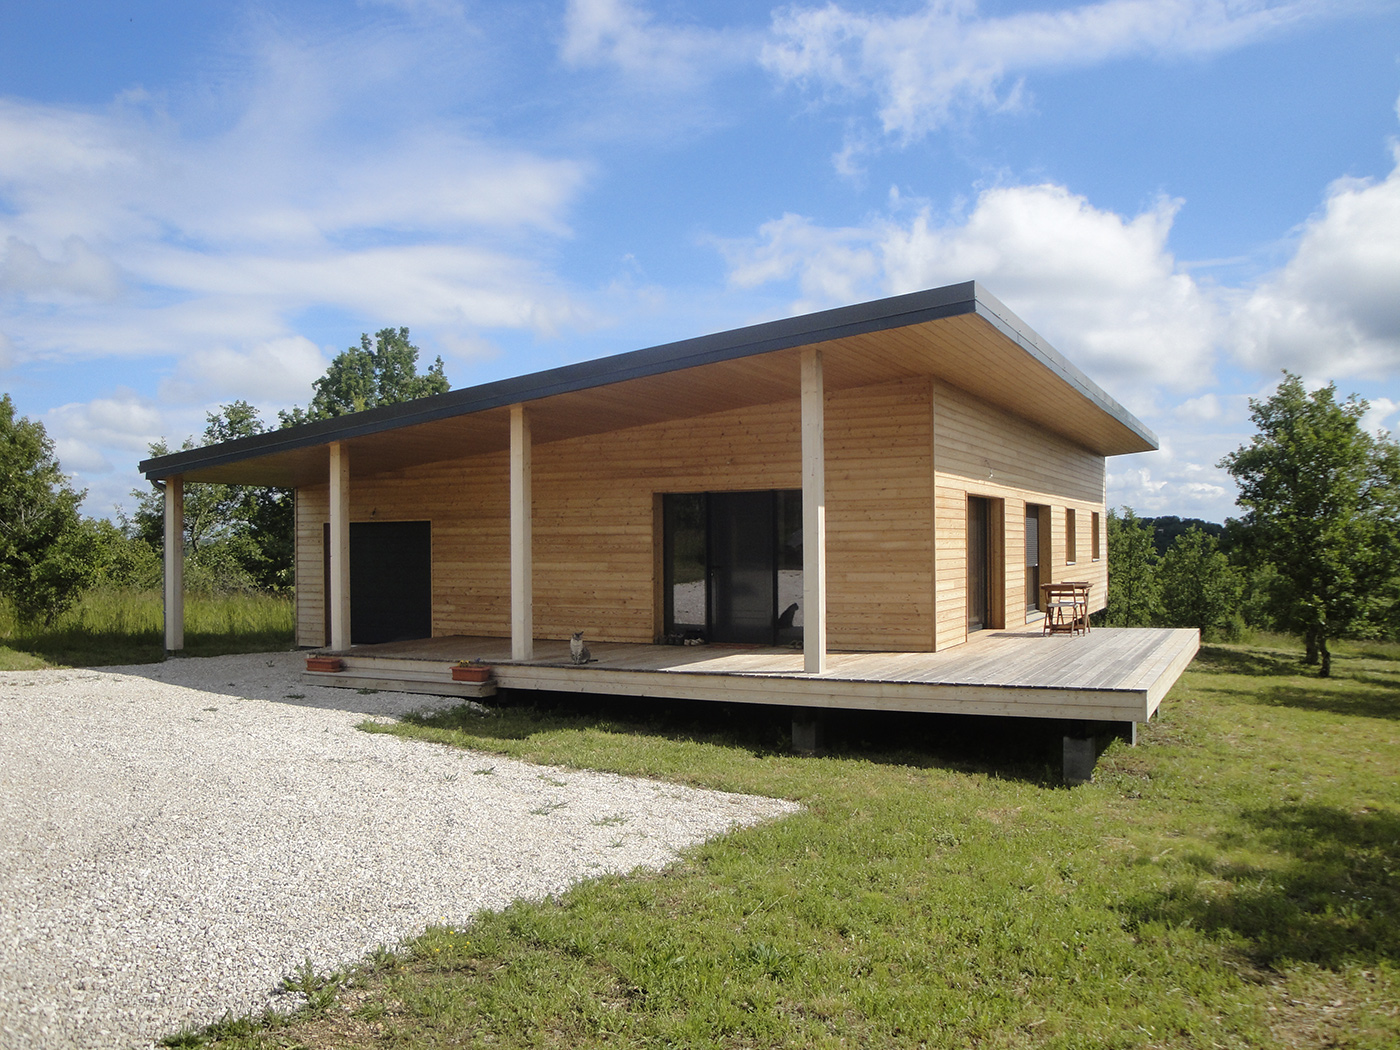 Maison contemporaine en ossature bois par evobois la for Constructeur maison contemporaine bois